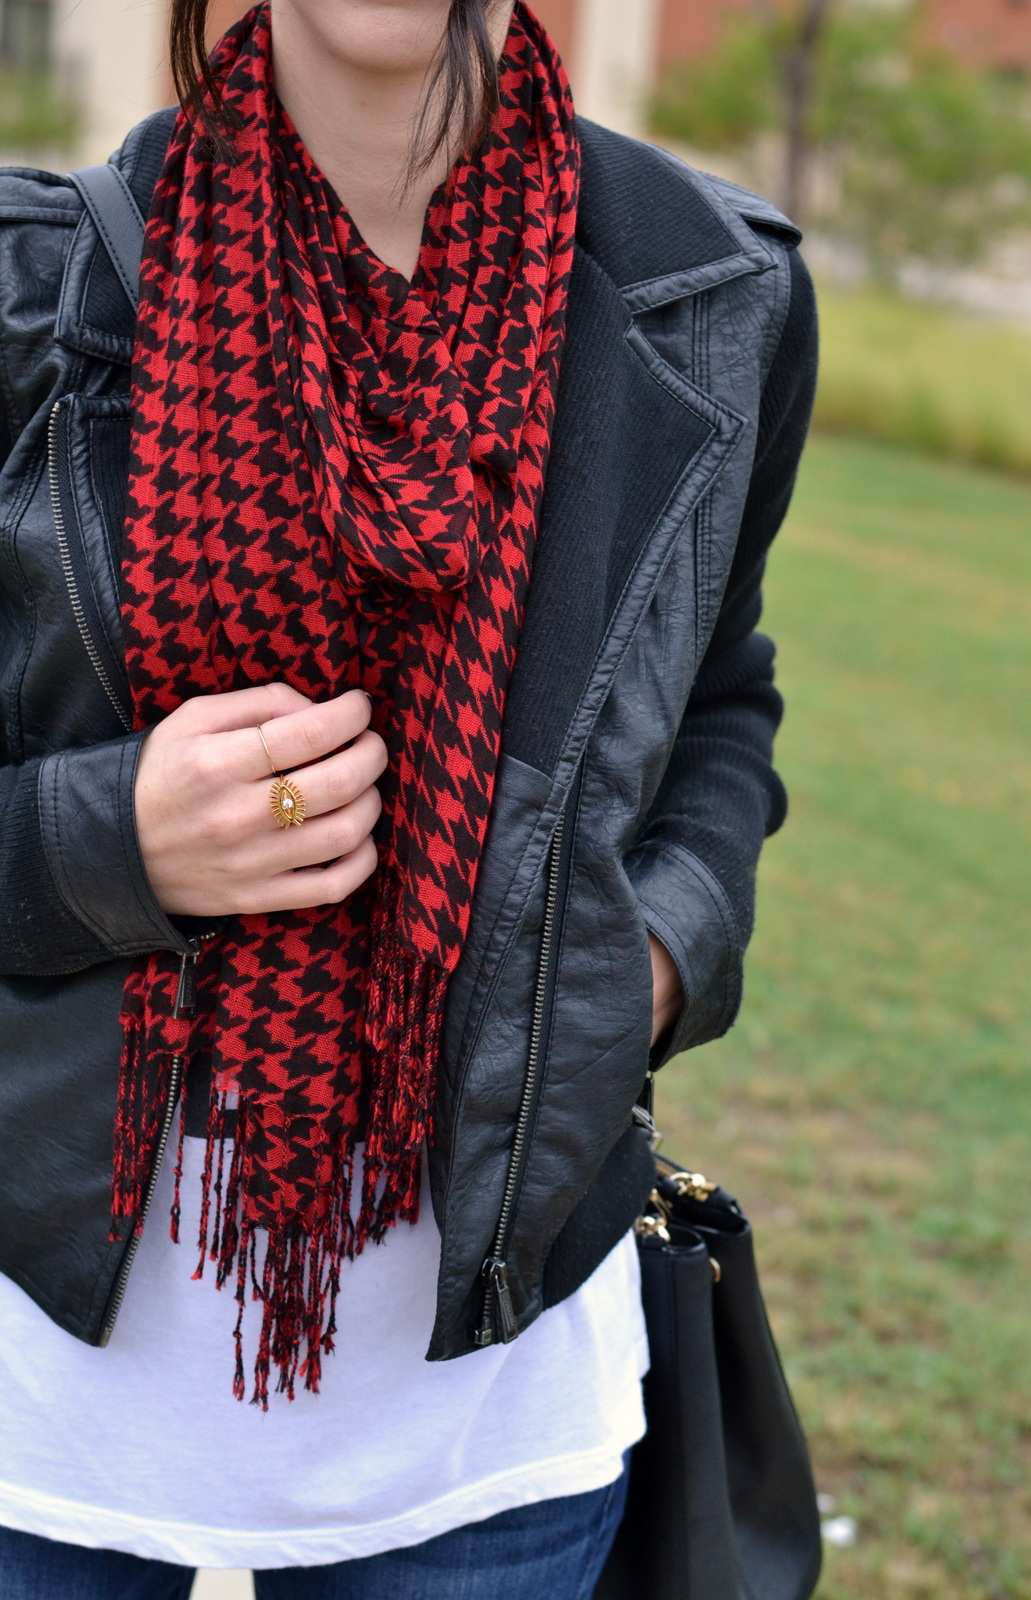 Fall_Scarf_Leather_Jacket